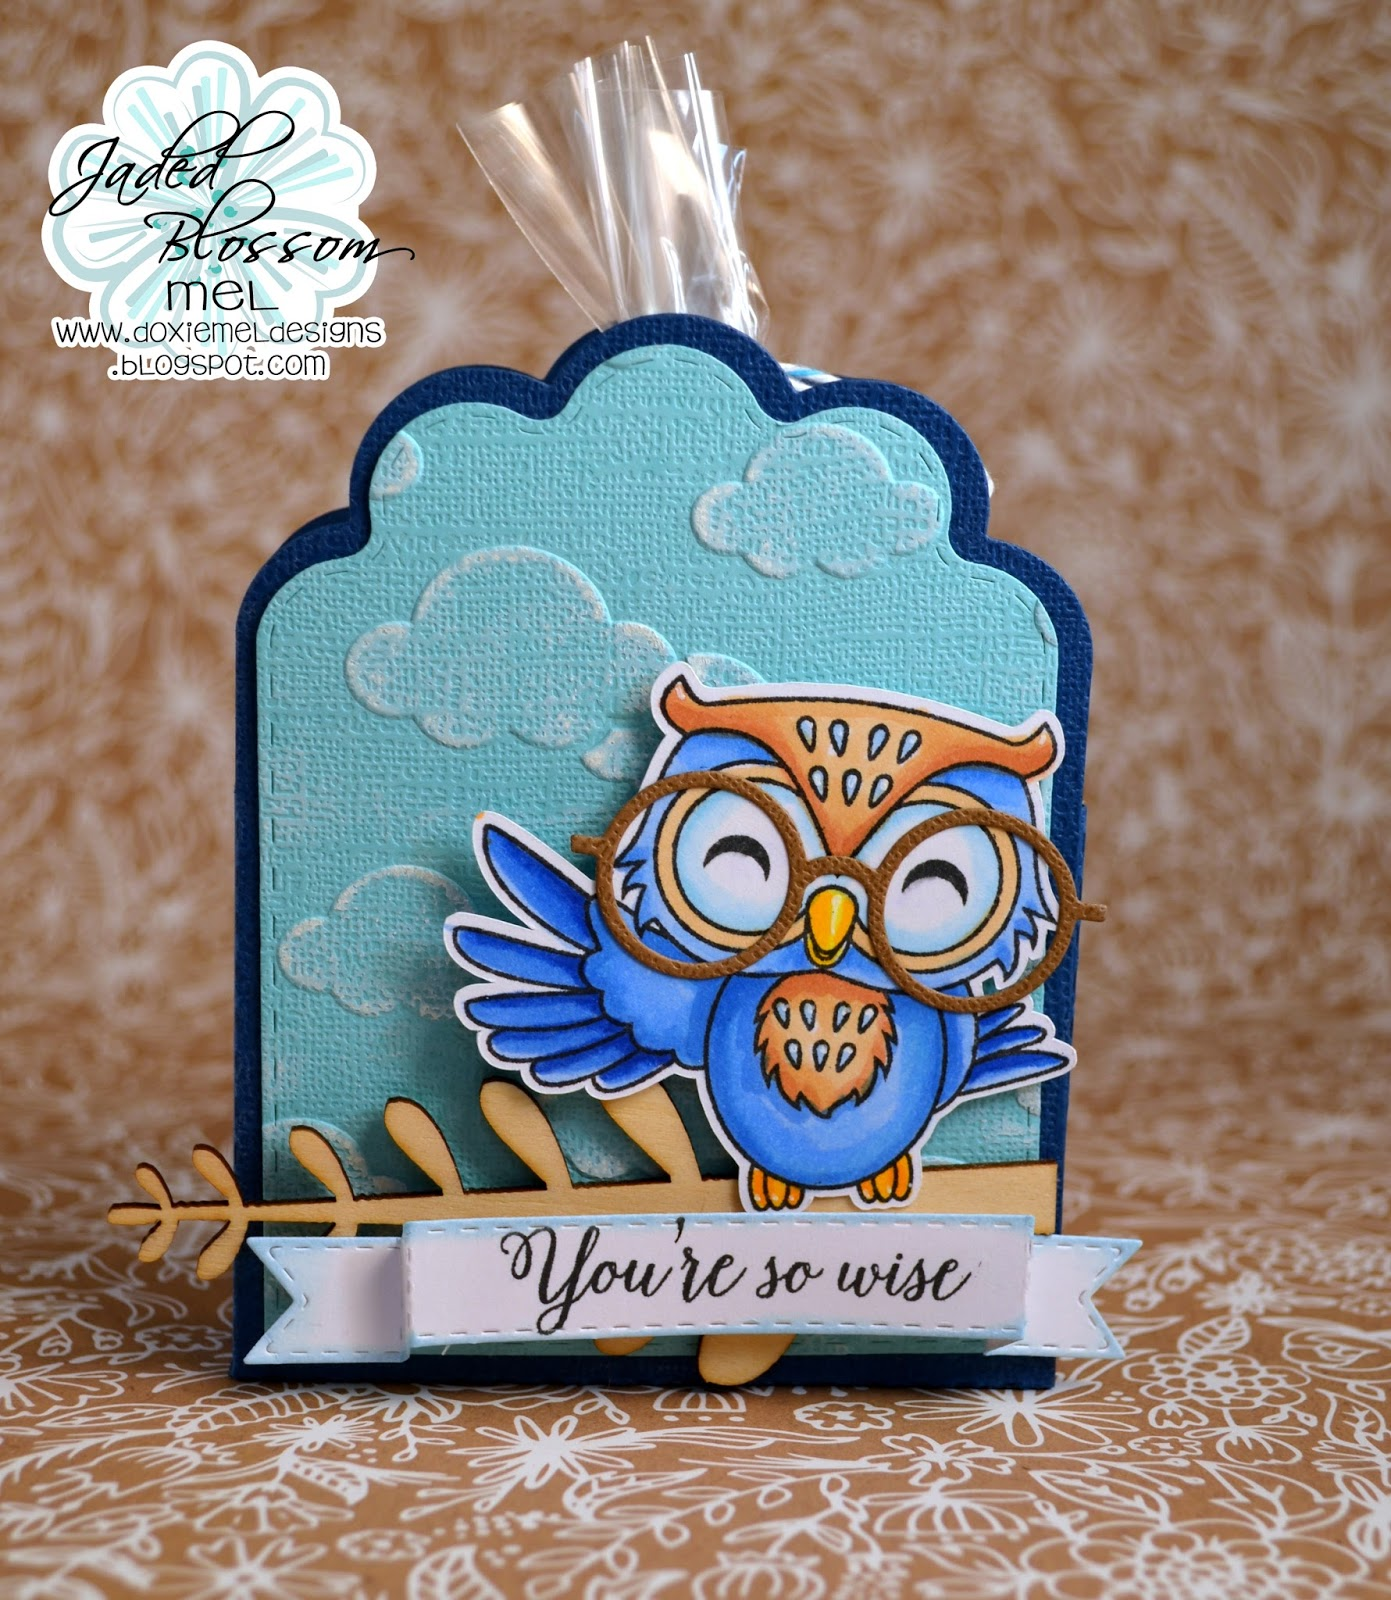 I Used The NEW Youre A Hoot Set And Scallop Caddy Die Glasses From Jaded Blossoms Mustache Dies Must Have For Wise Owl